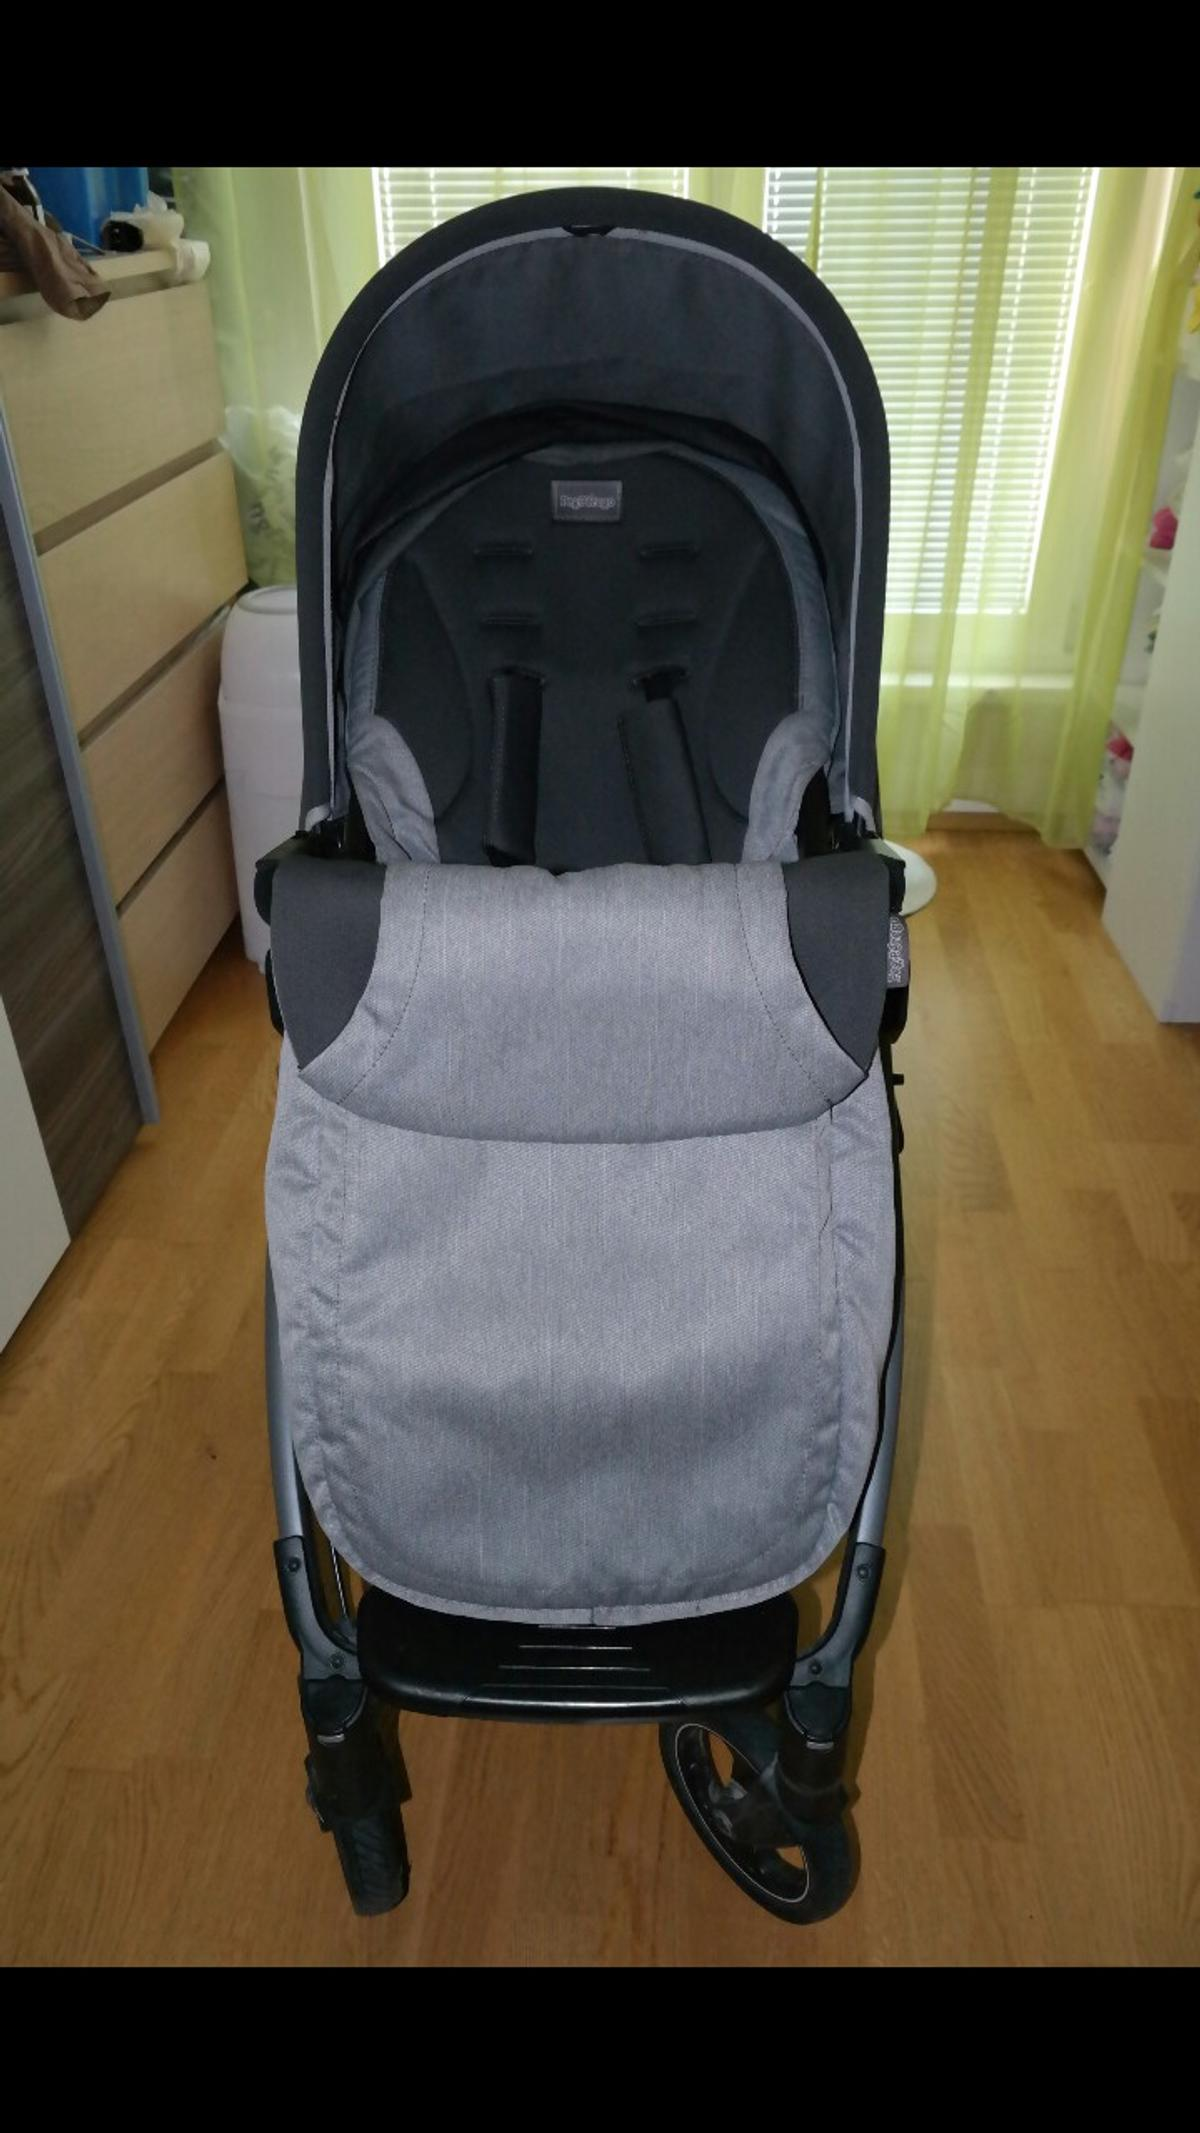 Book Plus S Pop Up Peg Perego Book Plus S Pop Up In 1020 Wien For 650 00 For